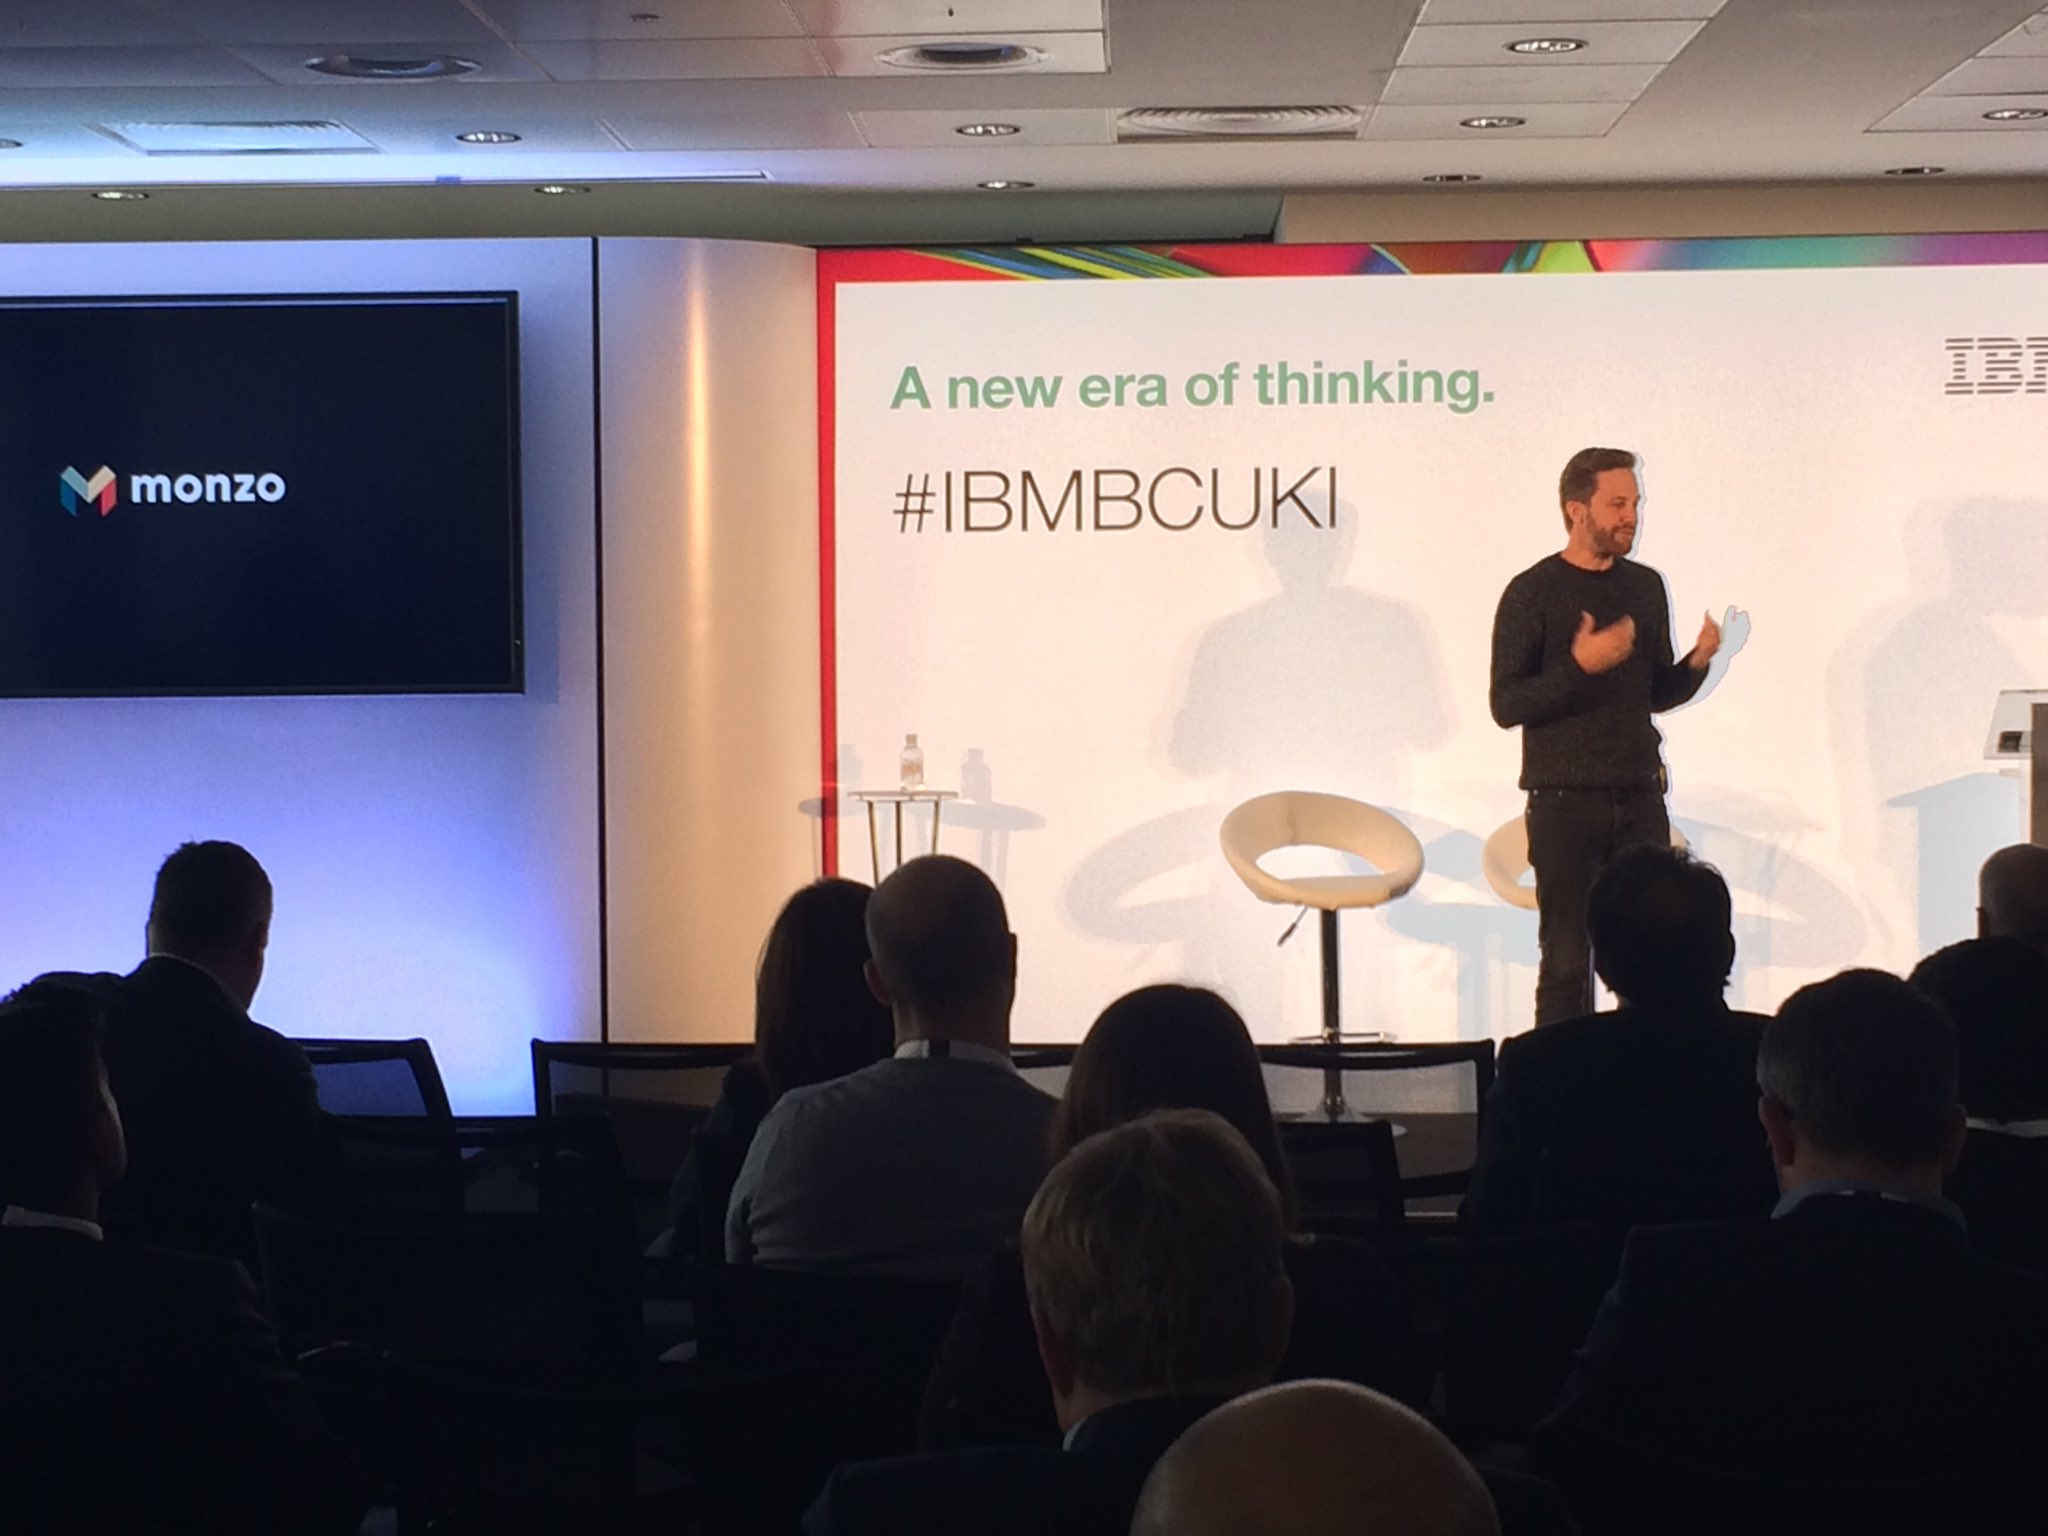 Tom Blomfield CEO at @monzo one of our newest banks shares how they are building a better bank at #IBMBCUKI  @t_blom https://t.co/PIPSSzCxAP